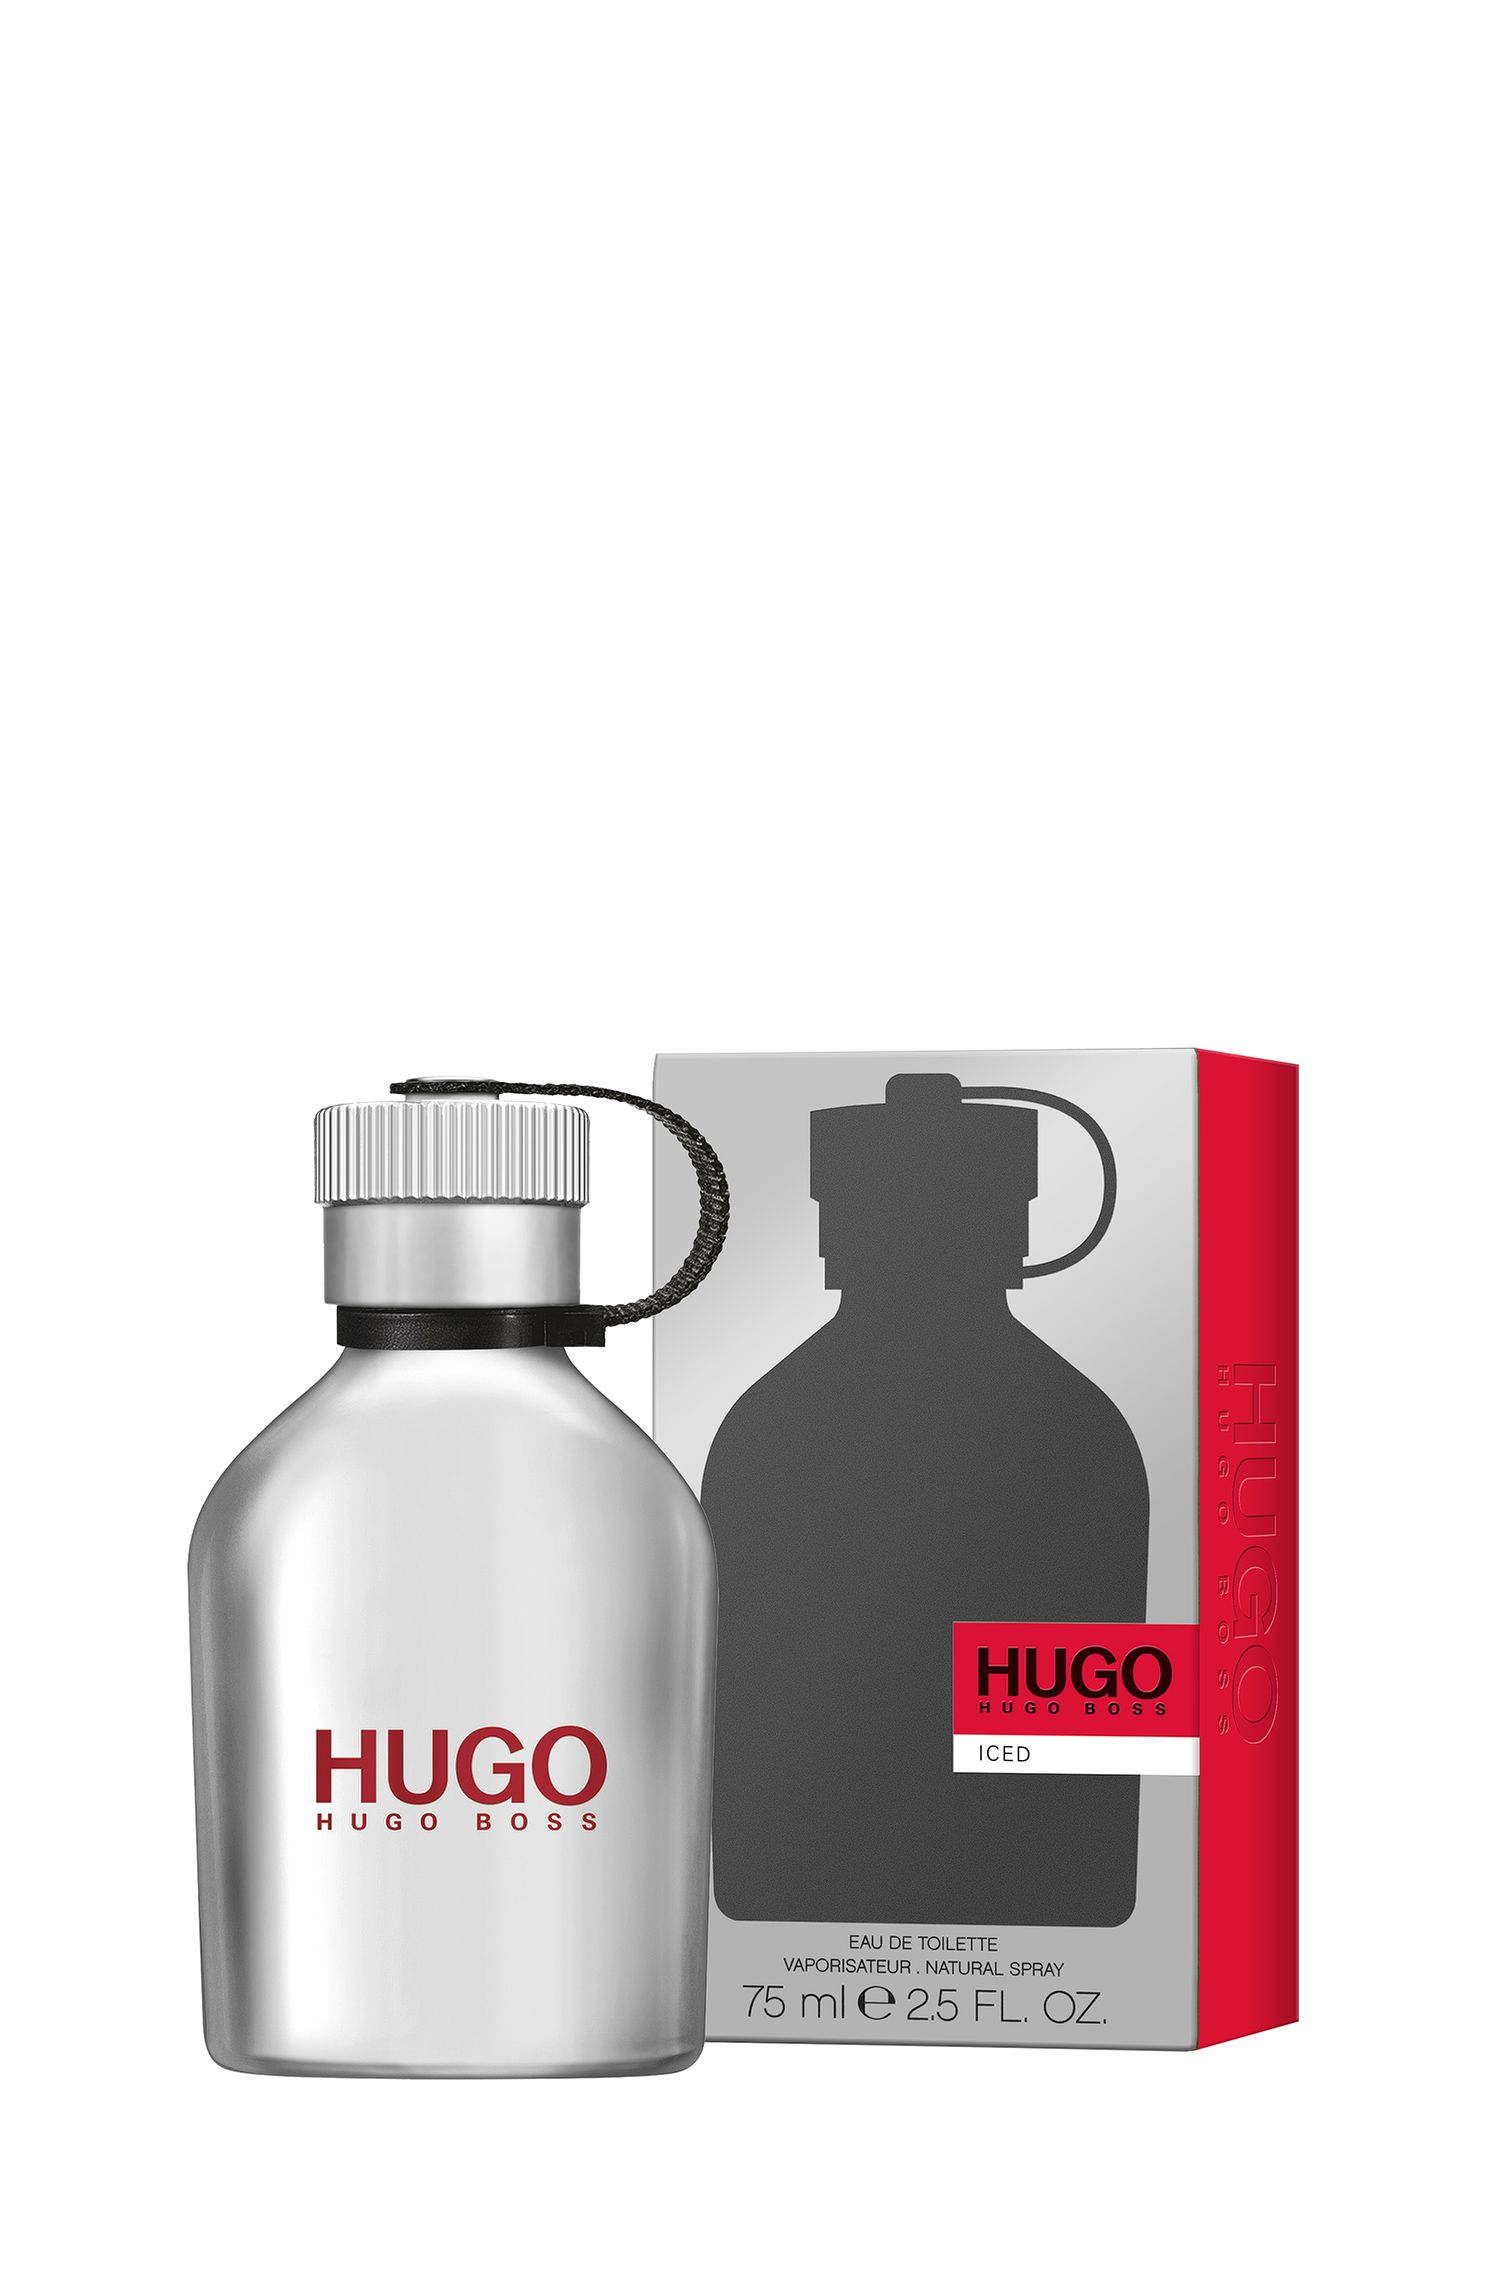 Eau de toilette HUGO Iced de 75 ml, Assorted-Pre-Pack